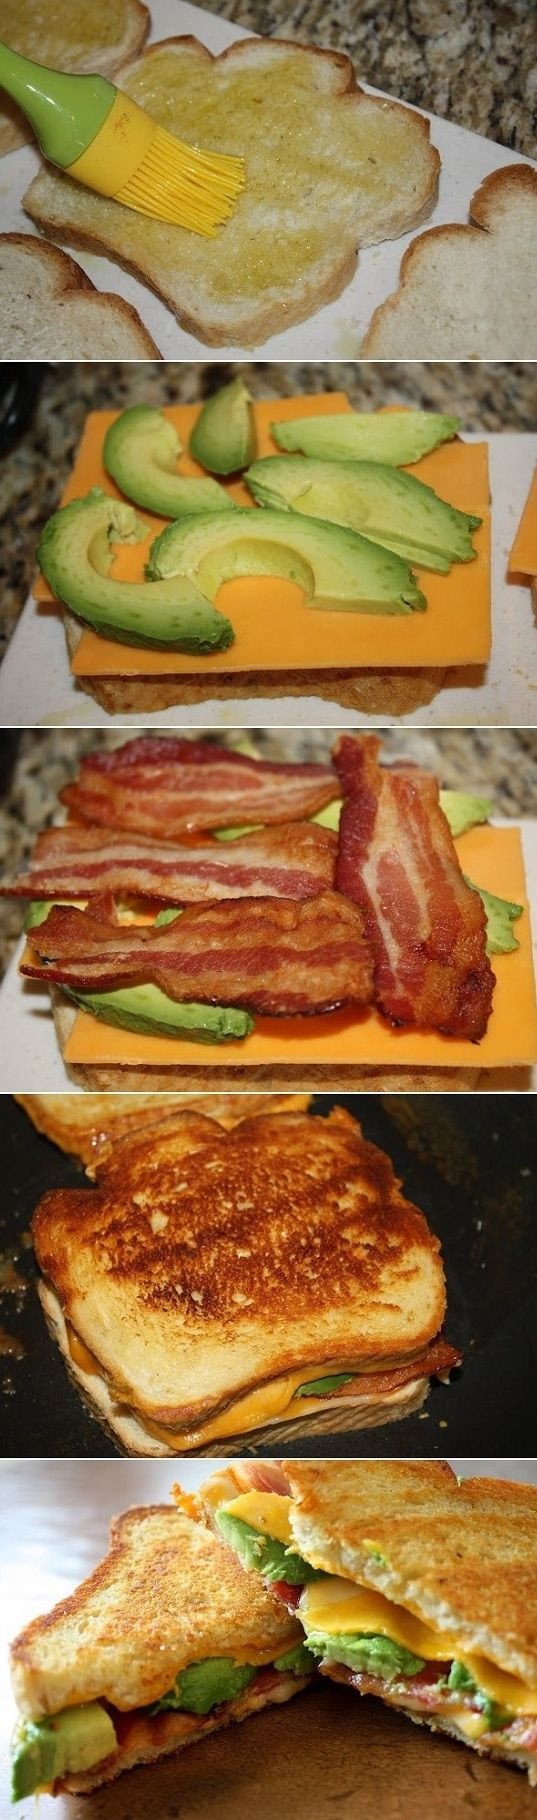 Bacon Avocado Grilled Cheese by Sugandha Alop